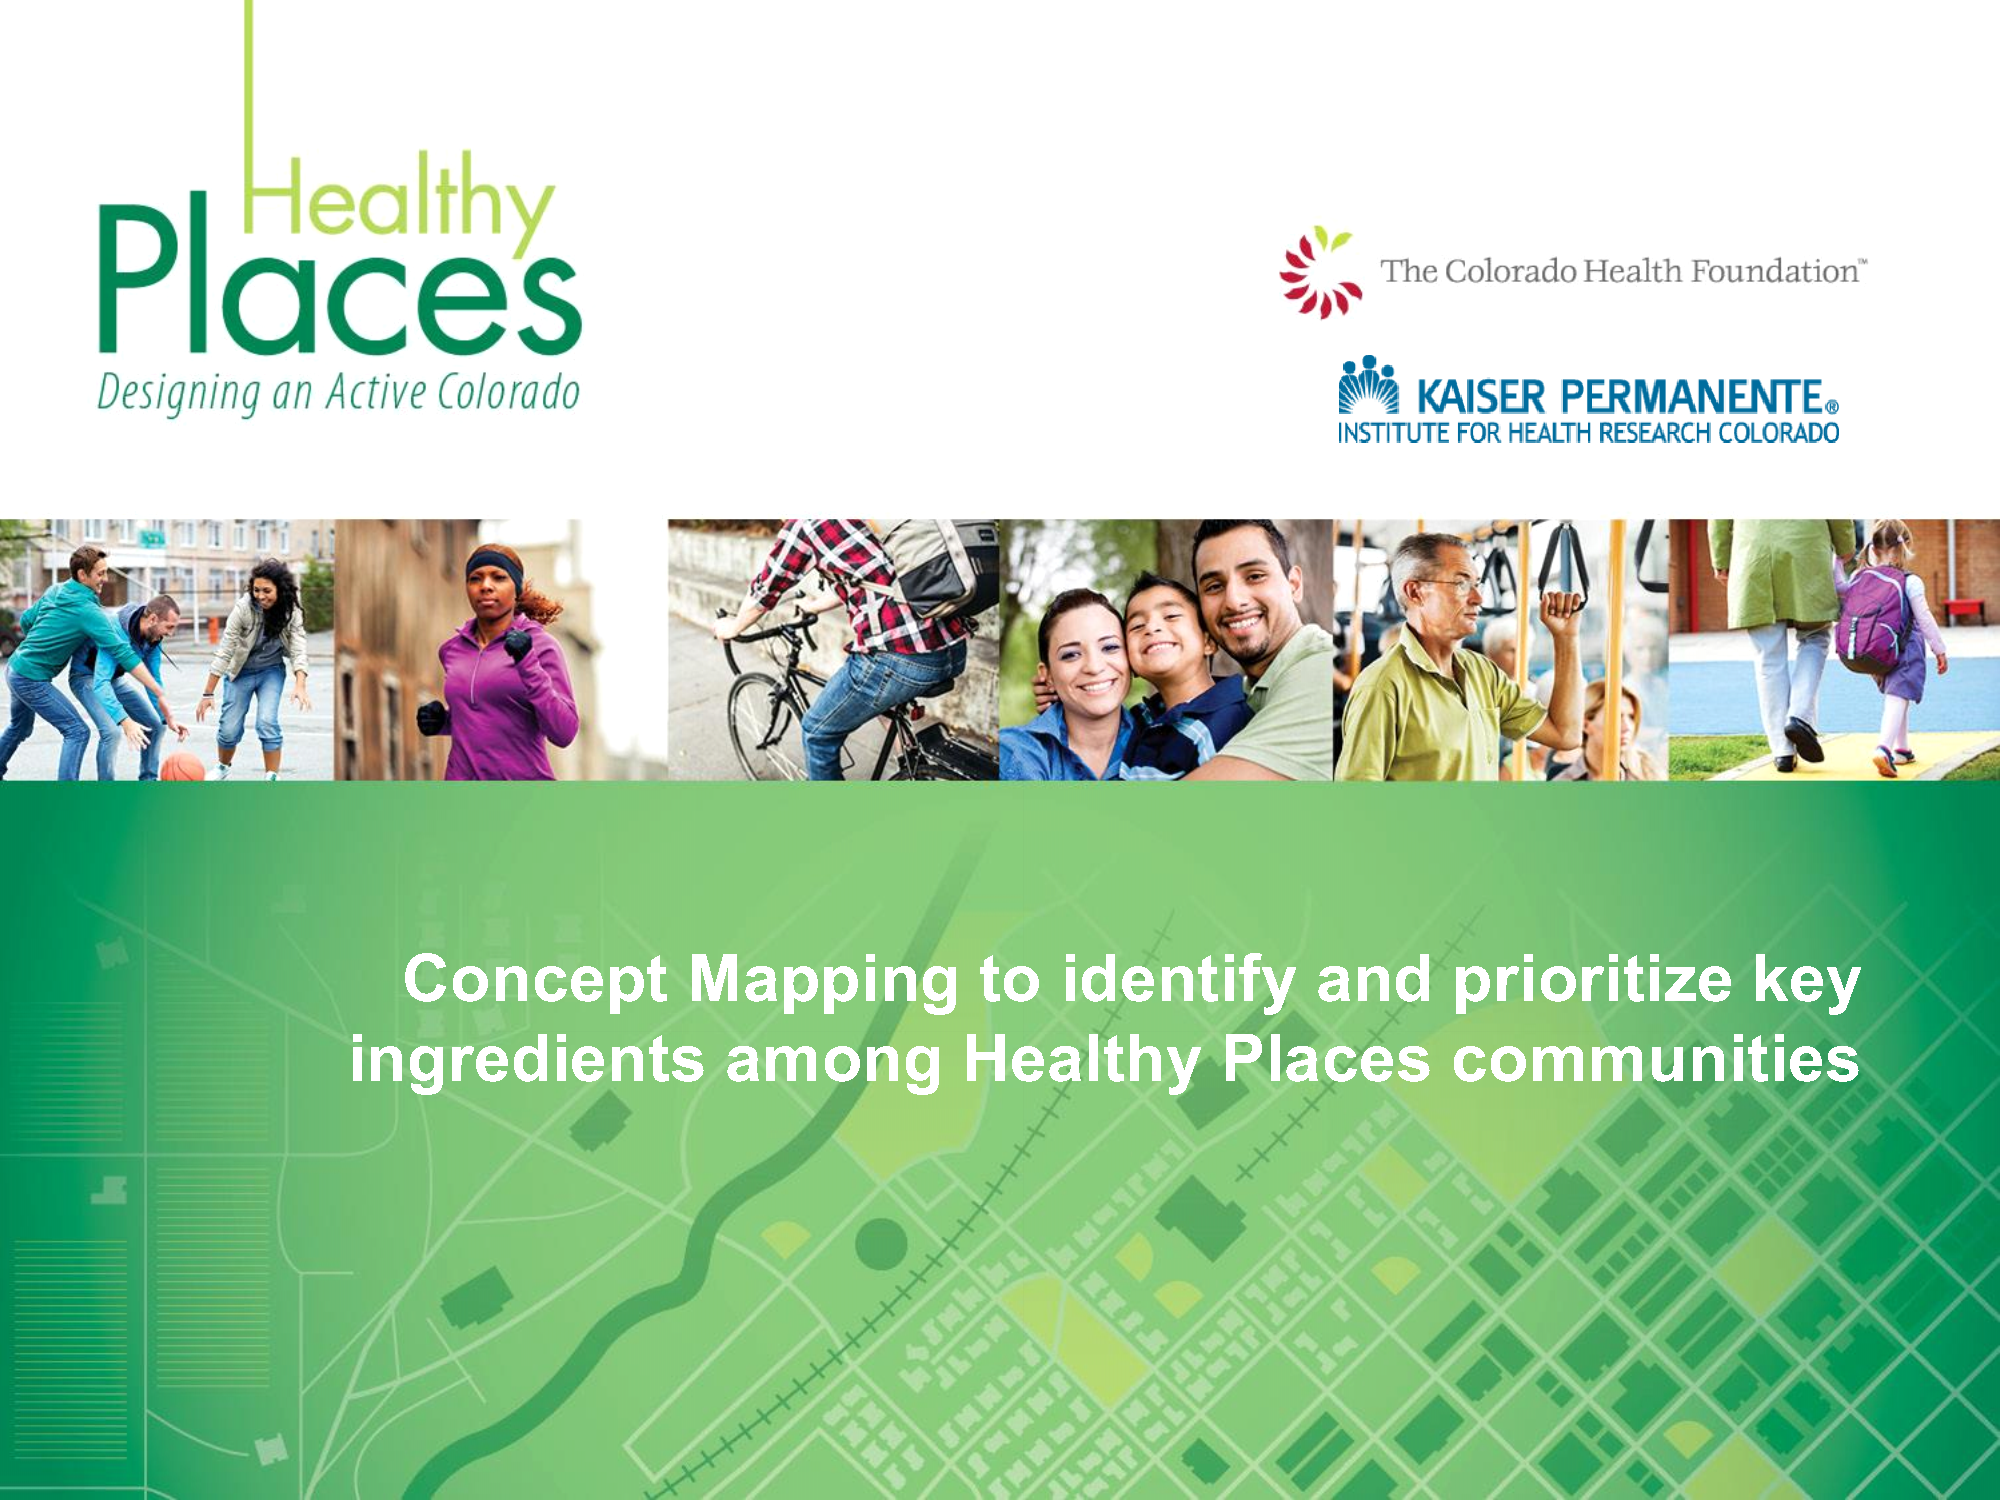 Healthy Places Key Ingredients and Concept Mapping Presentation 2016